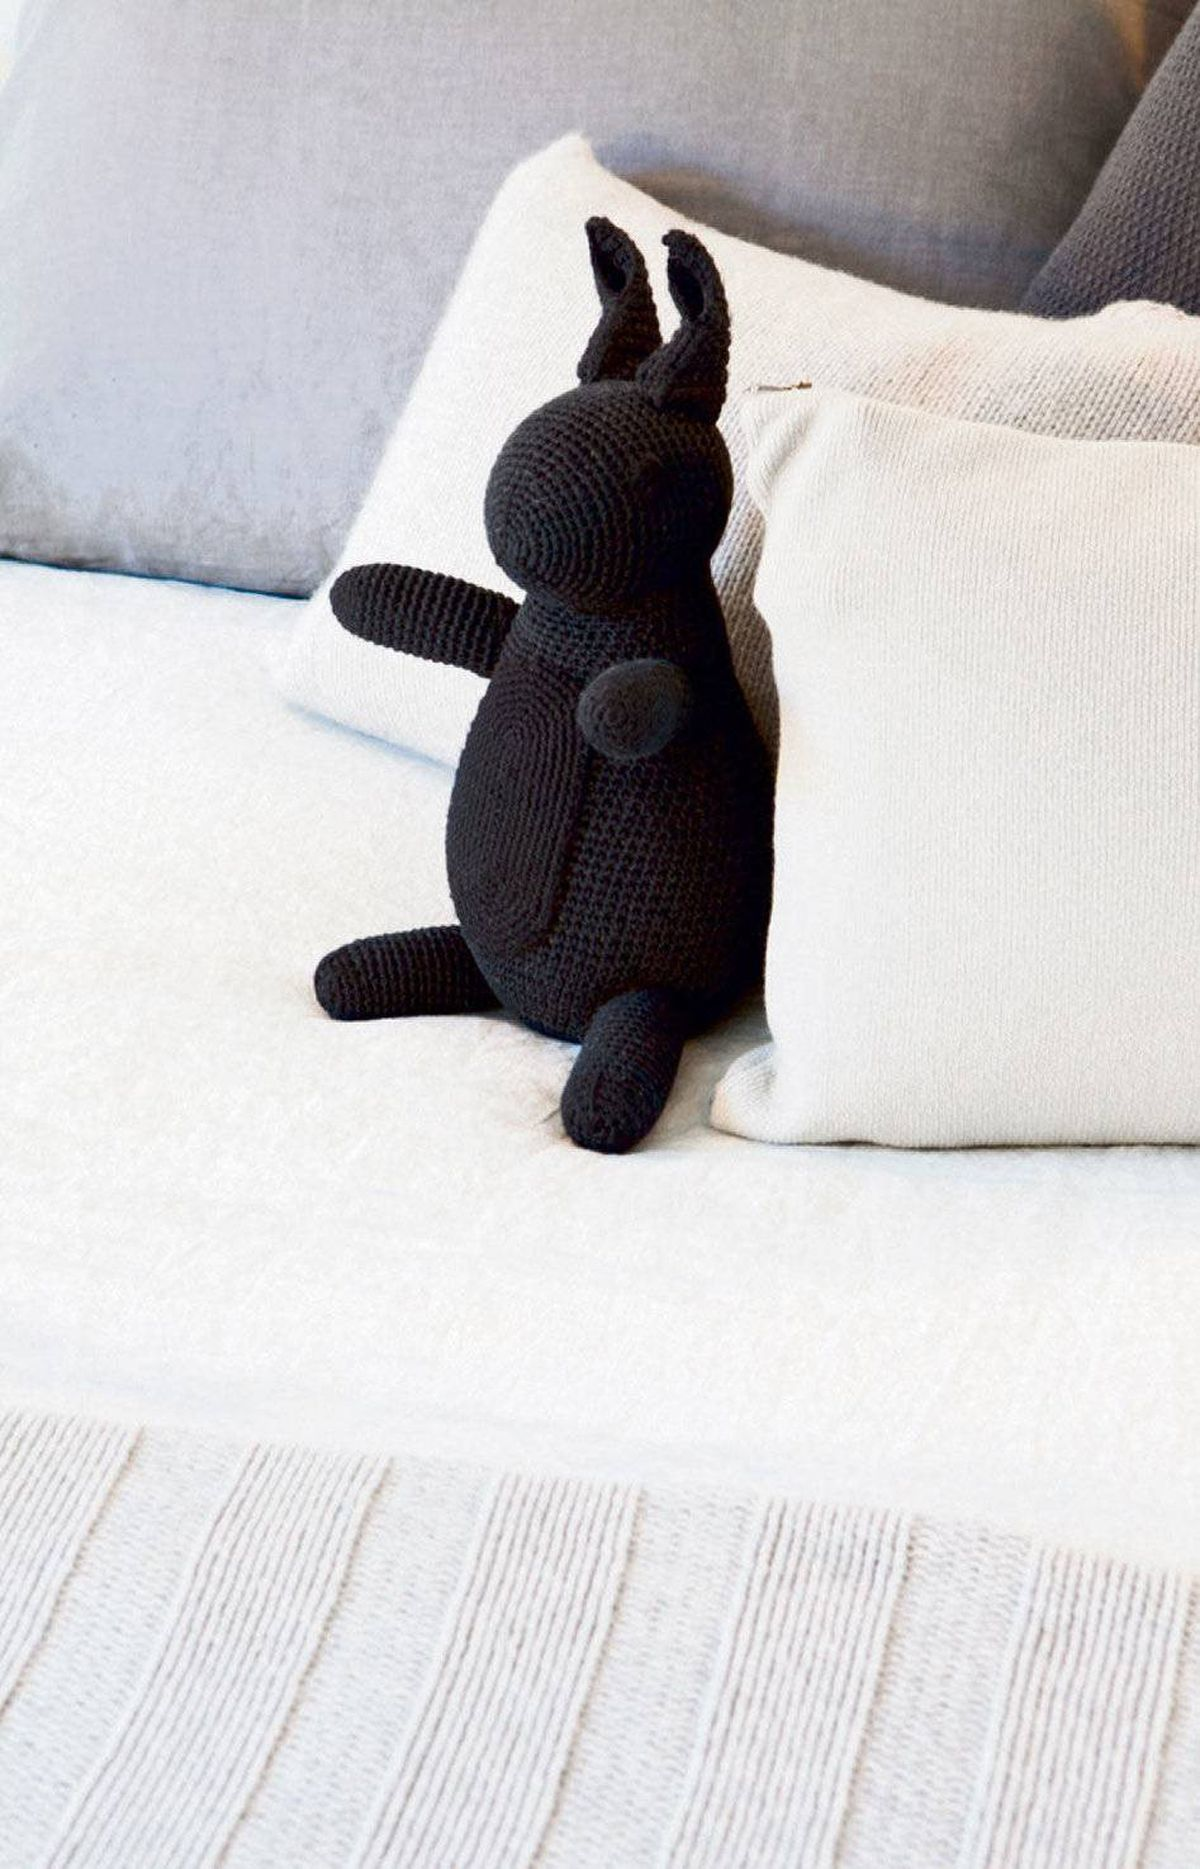 The stuffed cotton rabbit, a gift to Melissa from a friend, adds a touch of whimsy to the quasi-minimalist space.